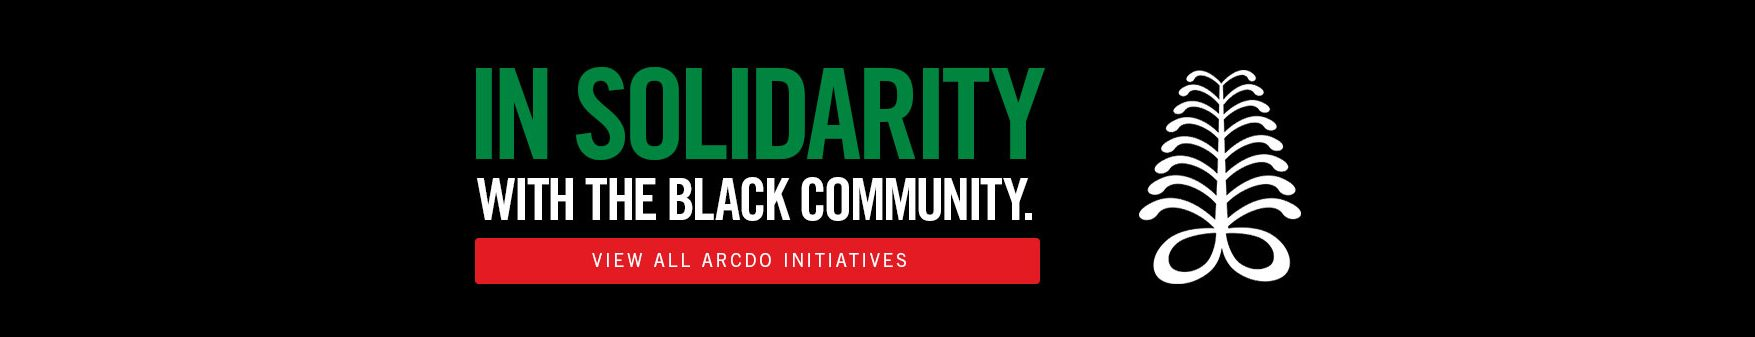 Click here to view all ARCDO initiatives